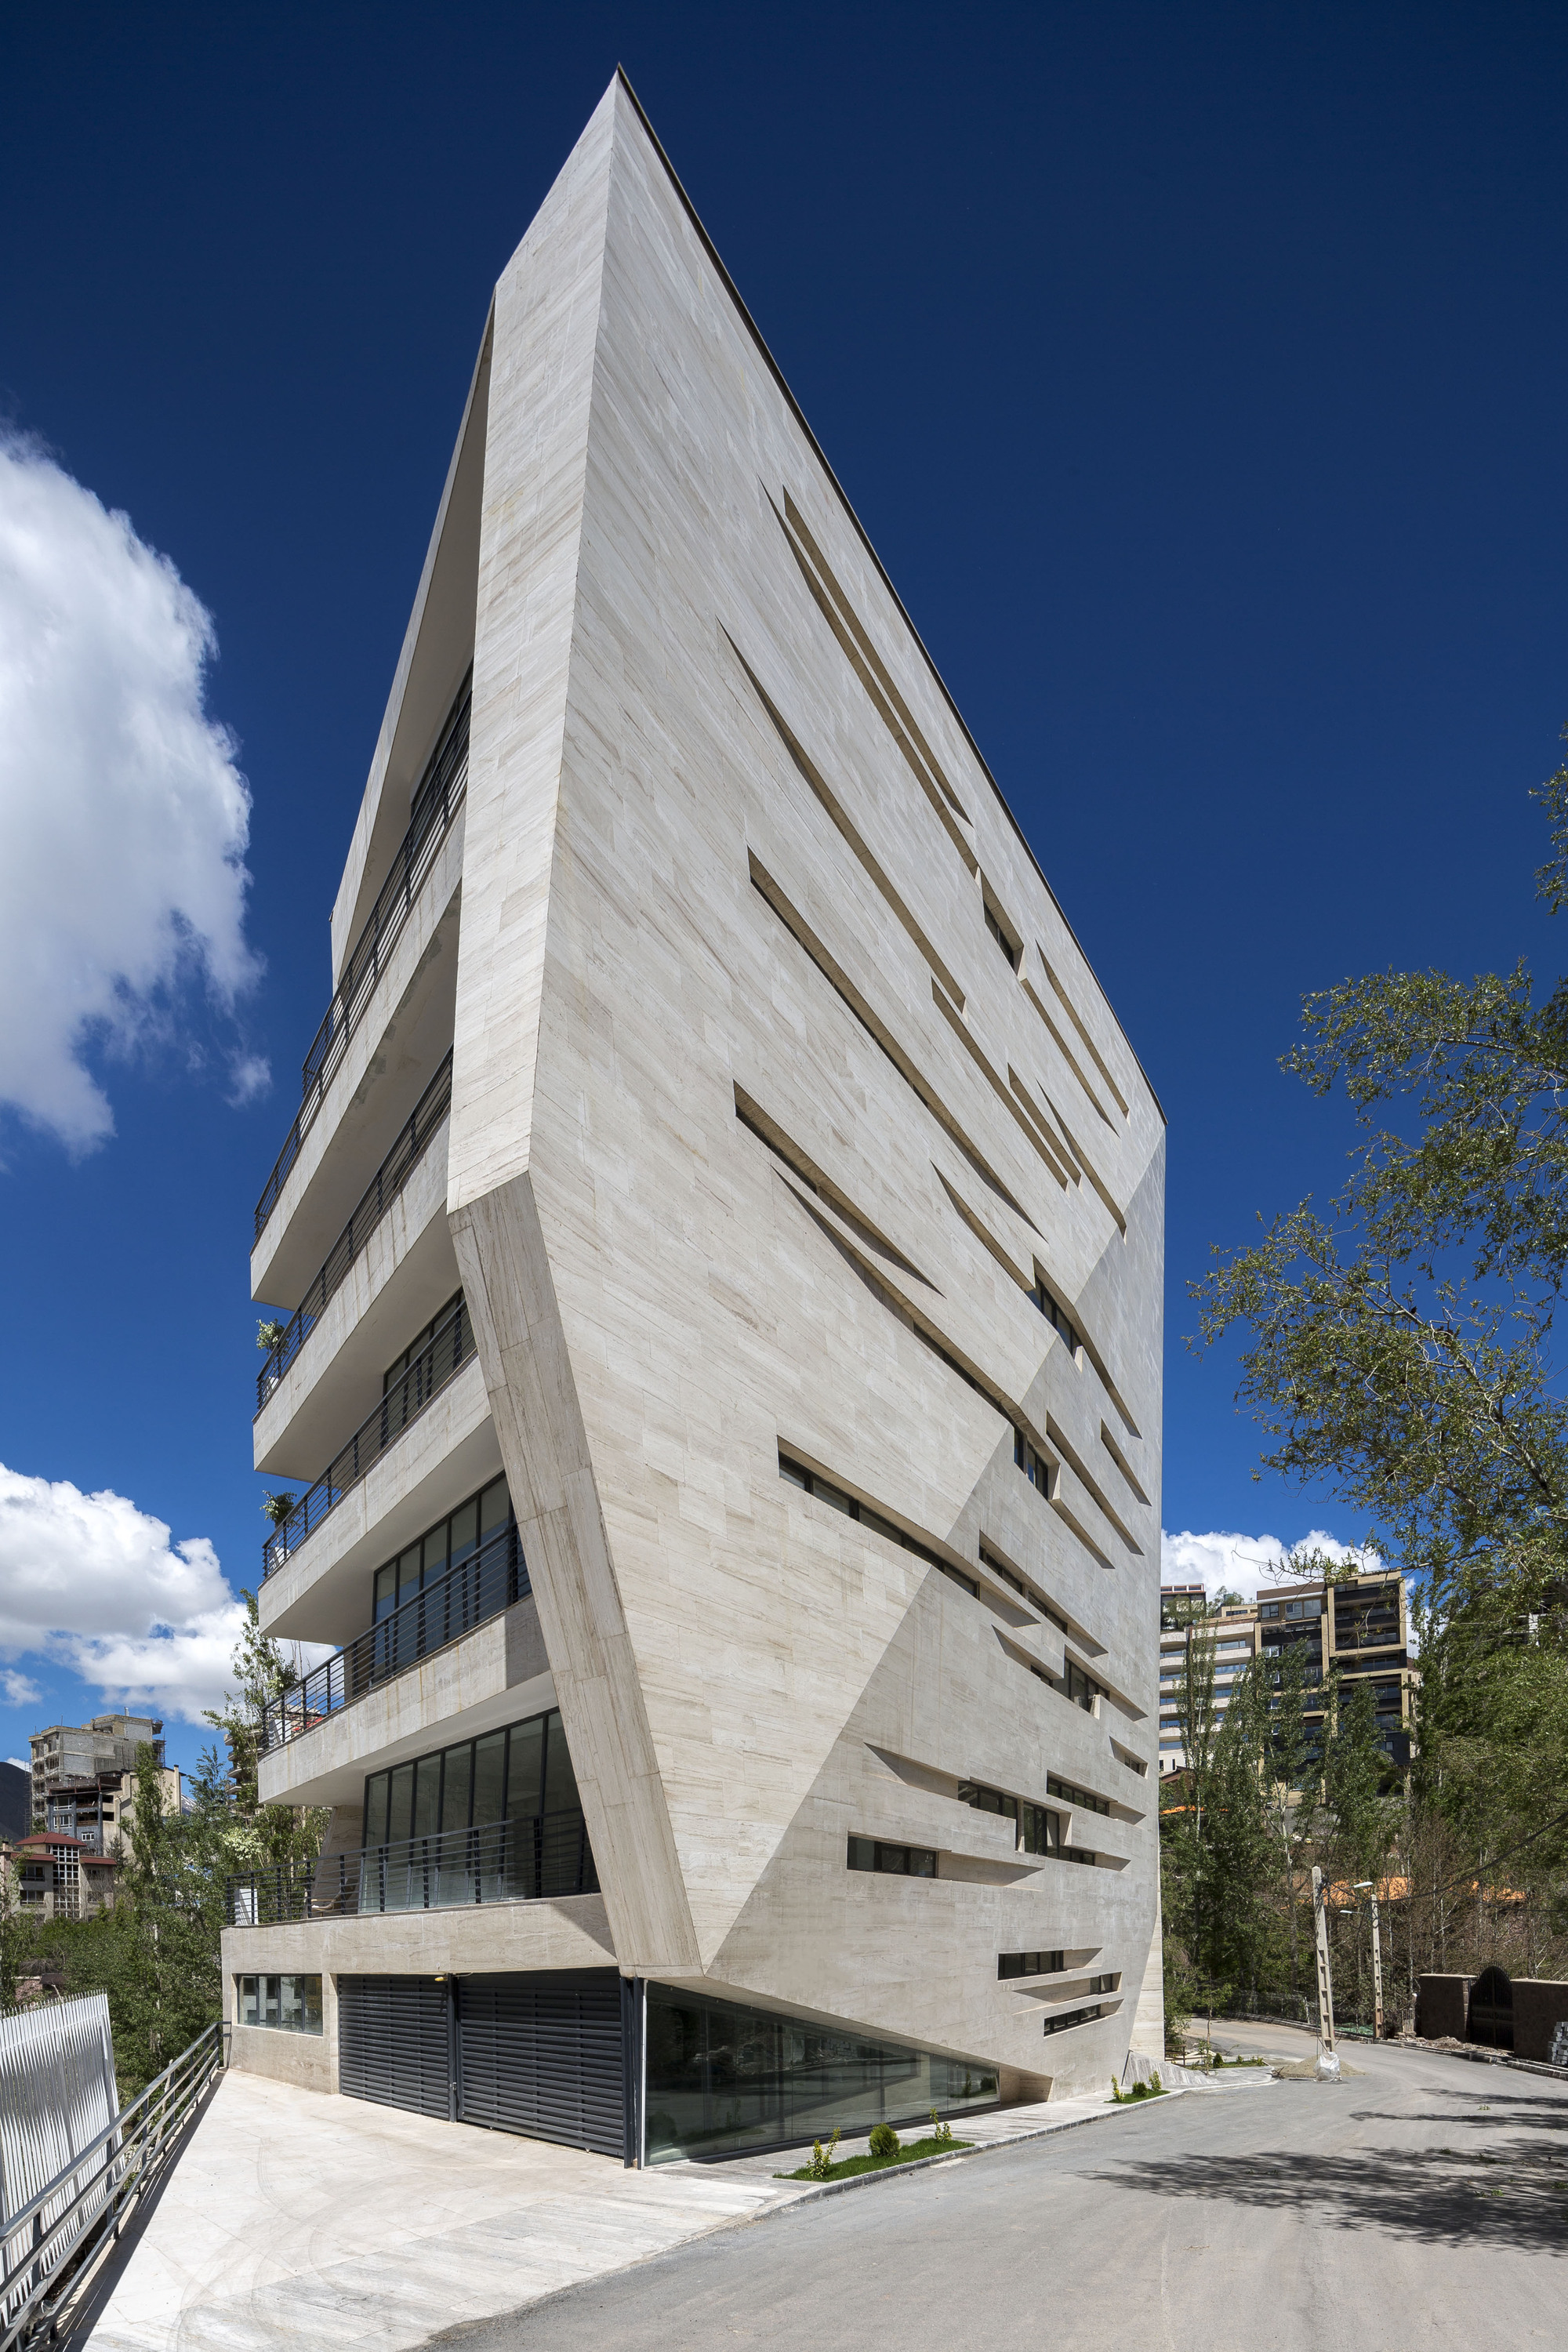 Residential Complex In Meygoon New Wave Architecture